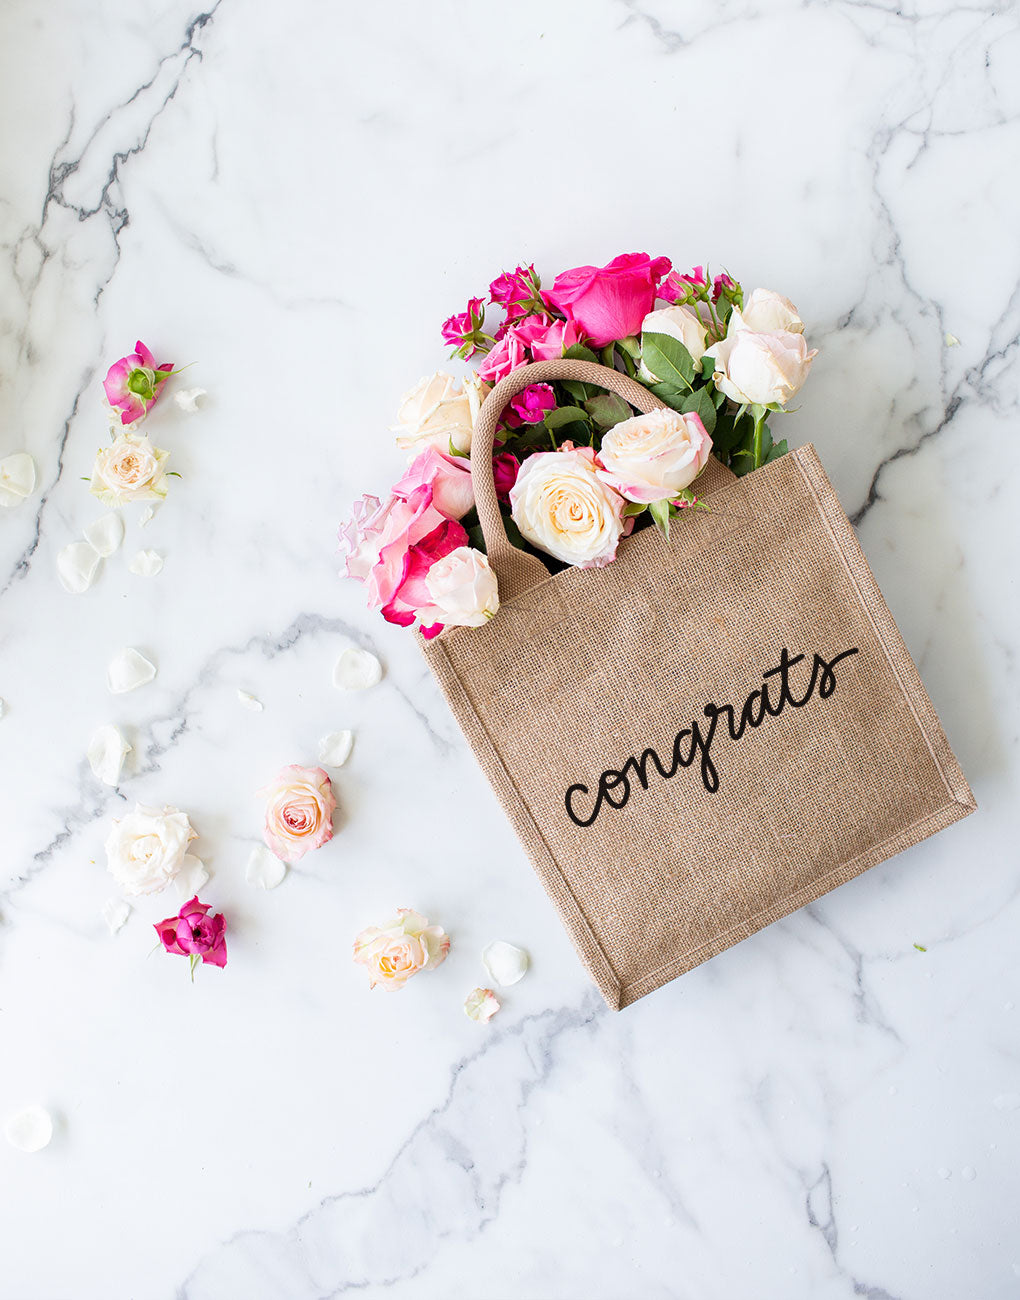 Large Congrats Reusable Gift Tote In Black Font With Flowers | The Little Market